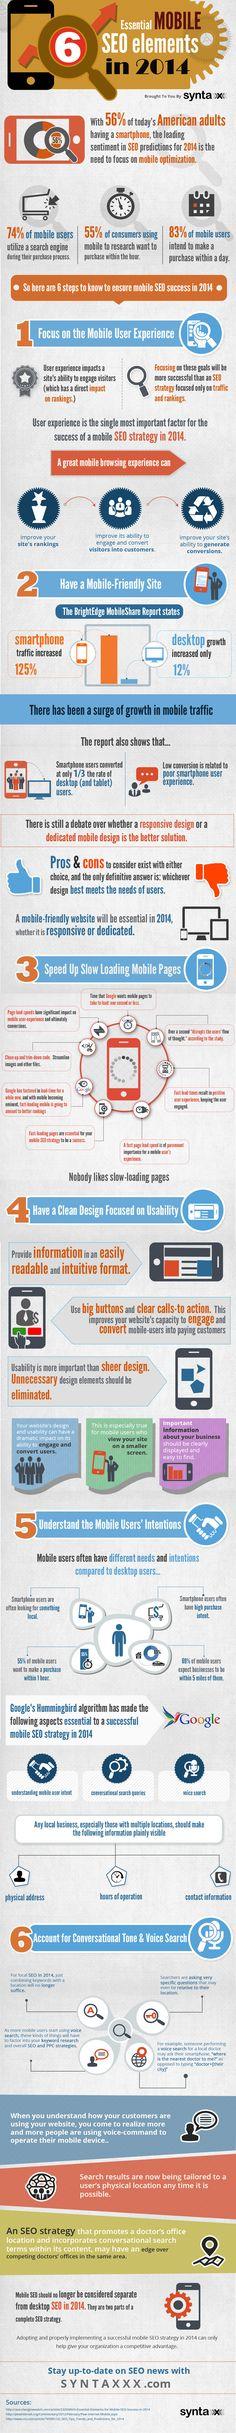 6 Essential #Mobile #SEO Elements in 2014 #marketing